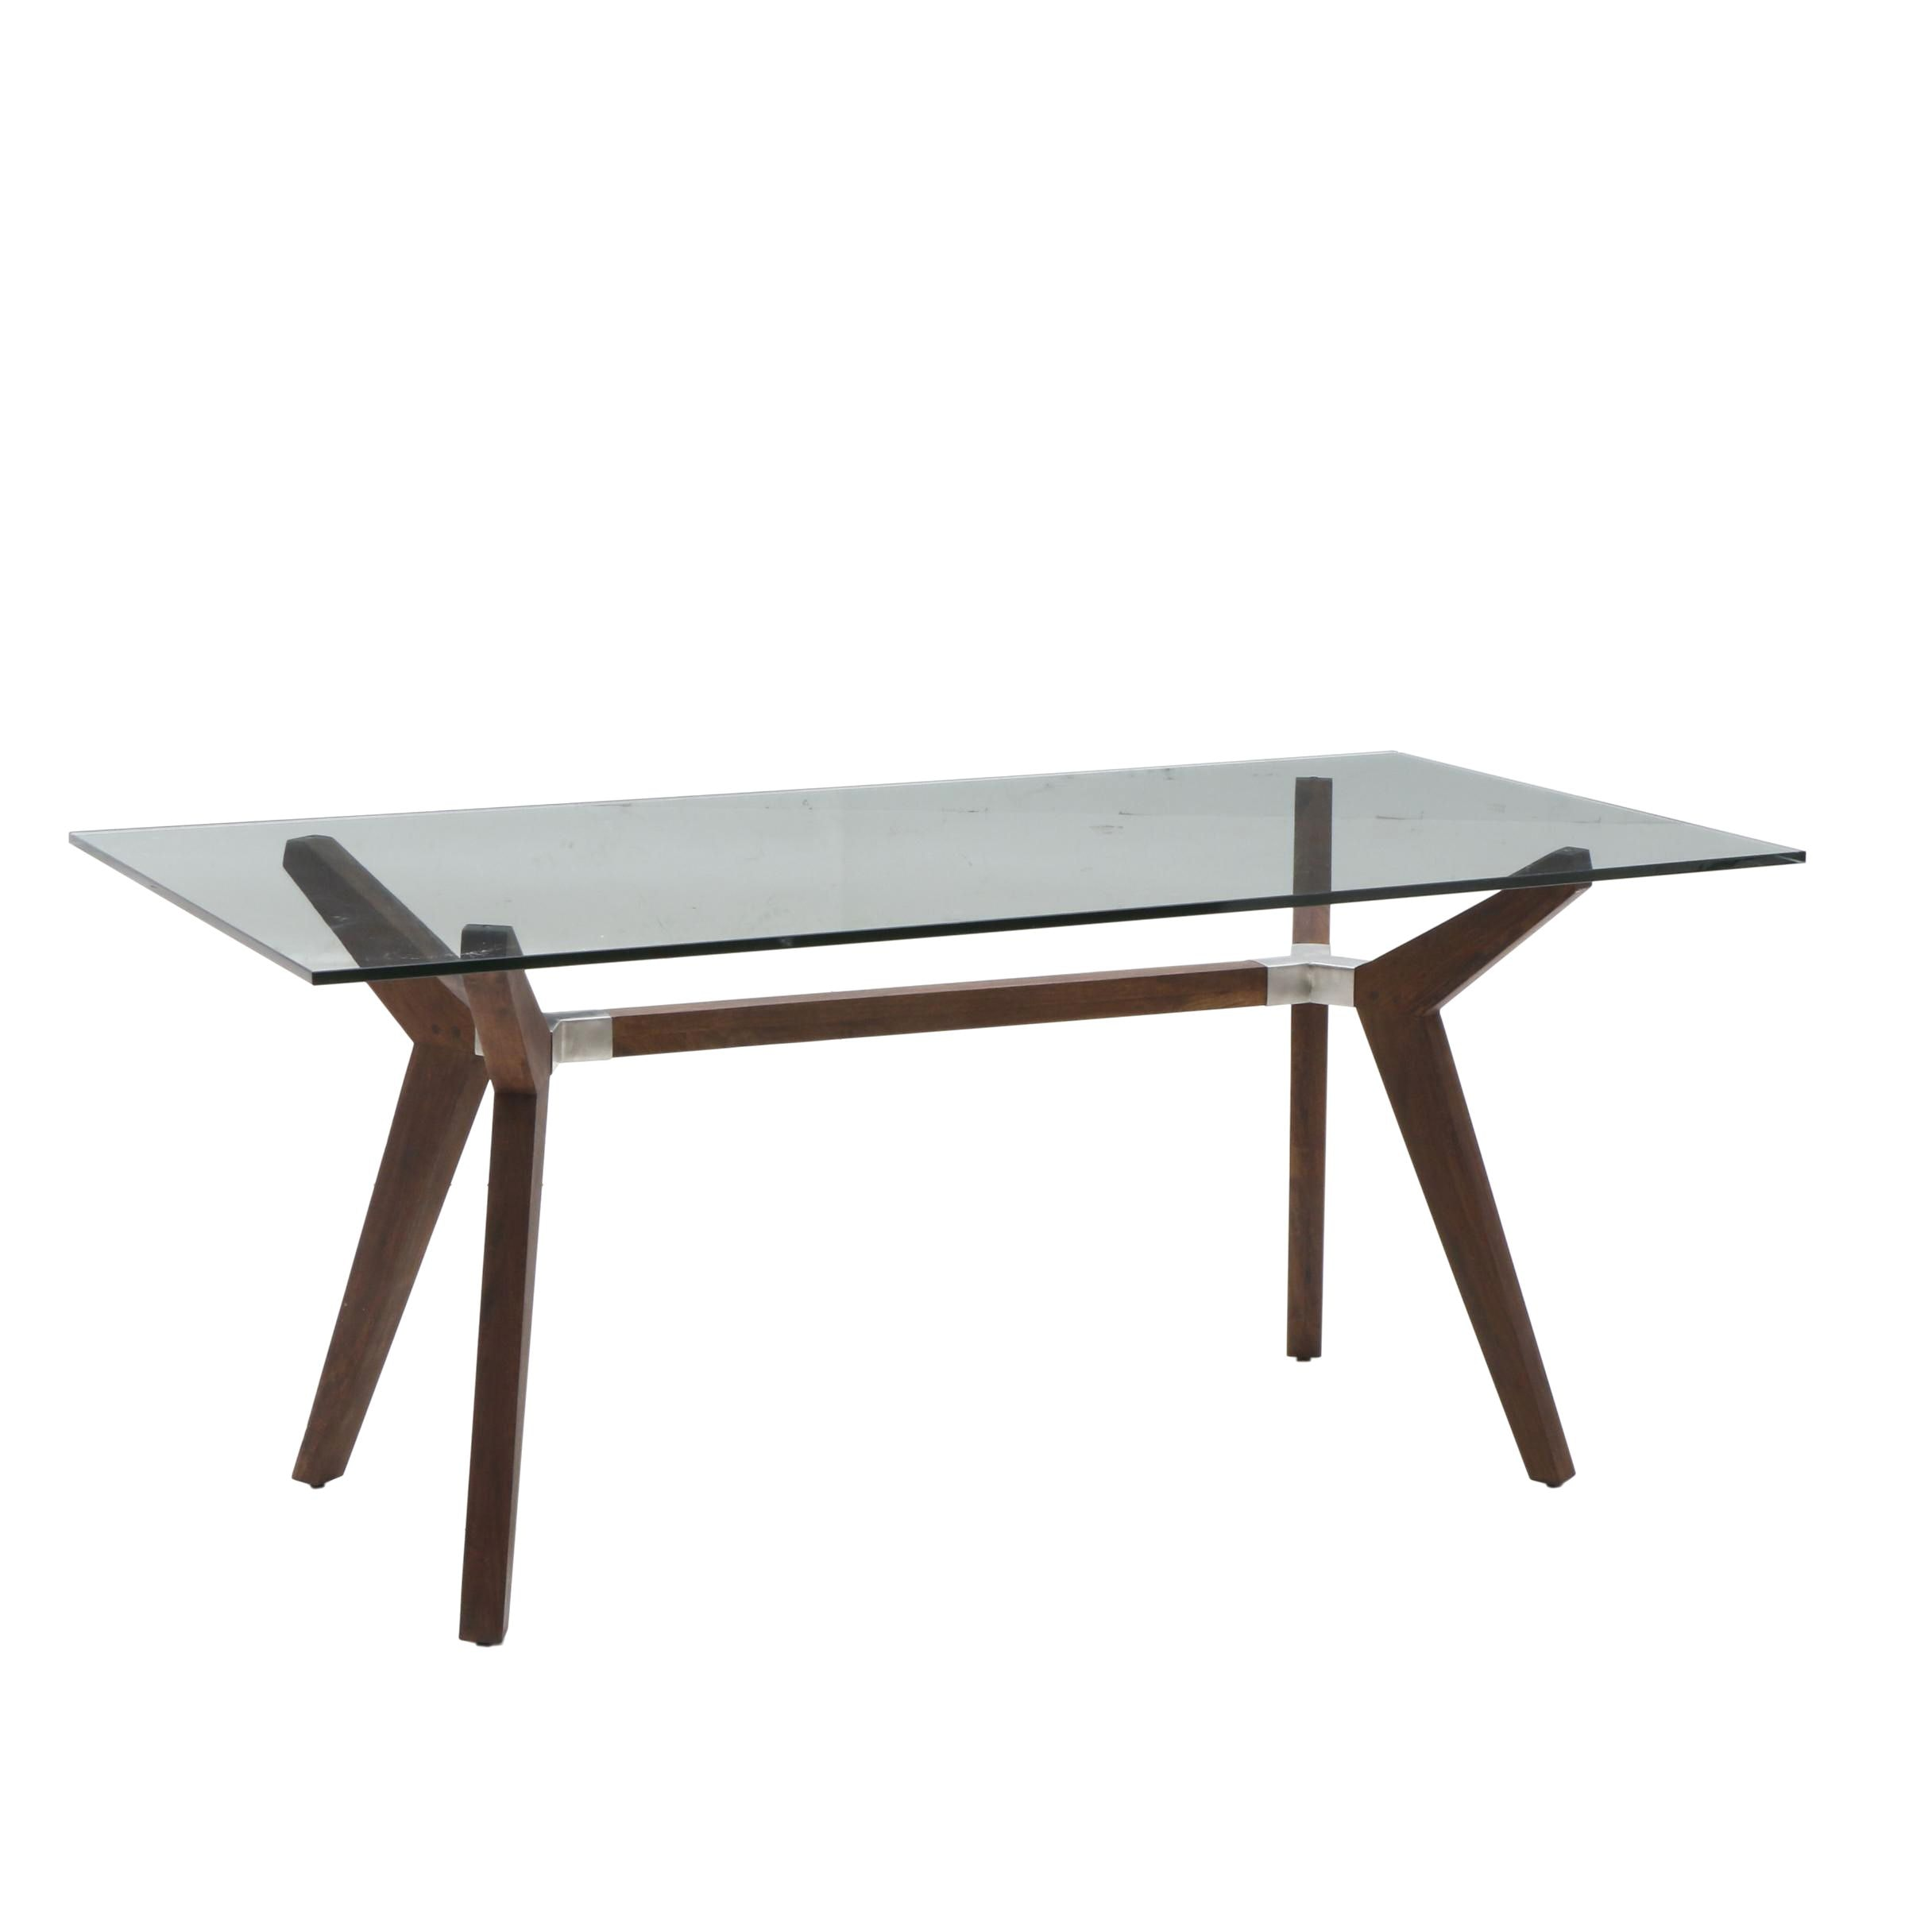 Contemporary Glass and Wood Dining Table by Crate and Barrel